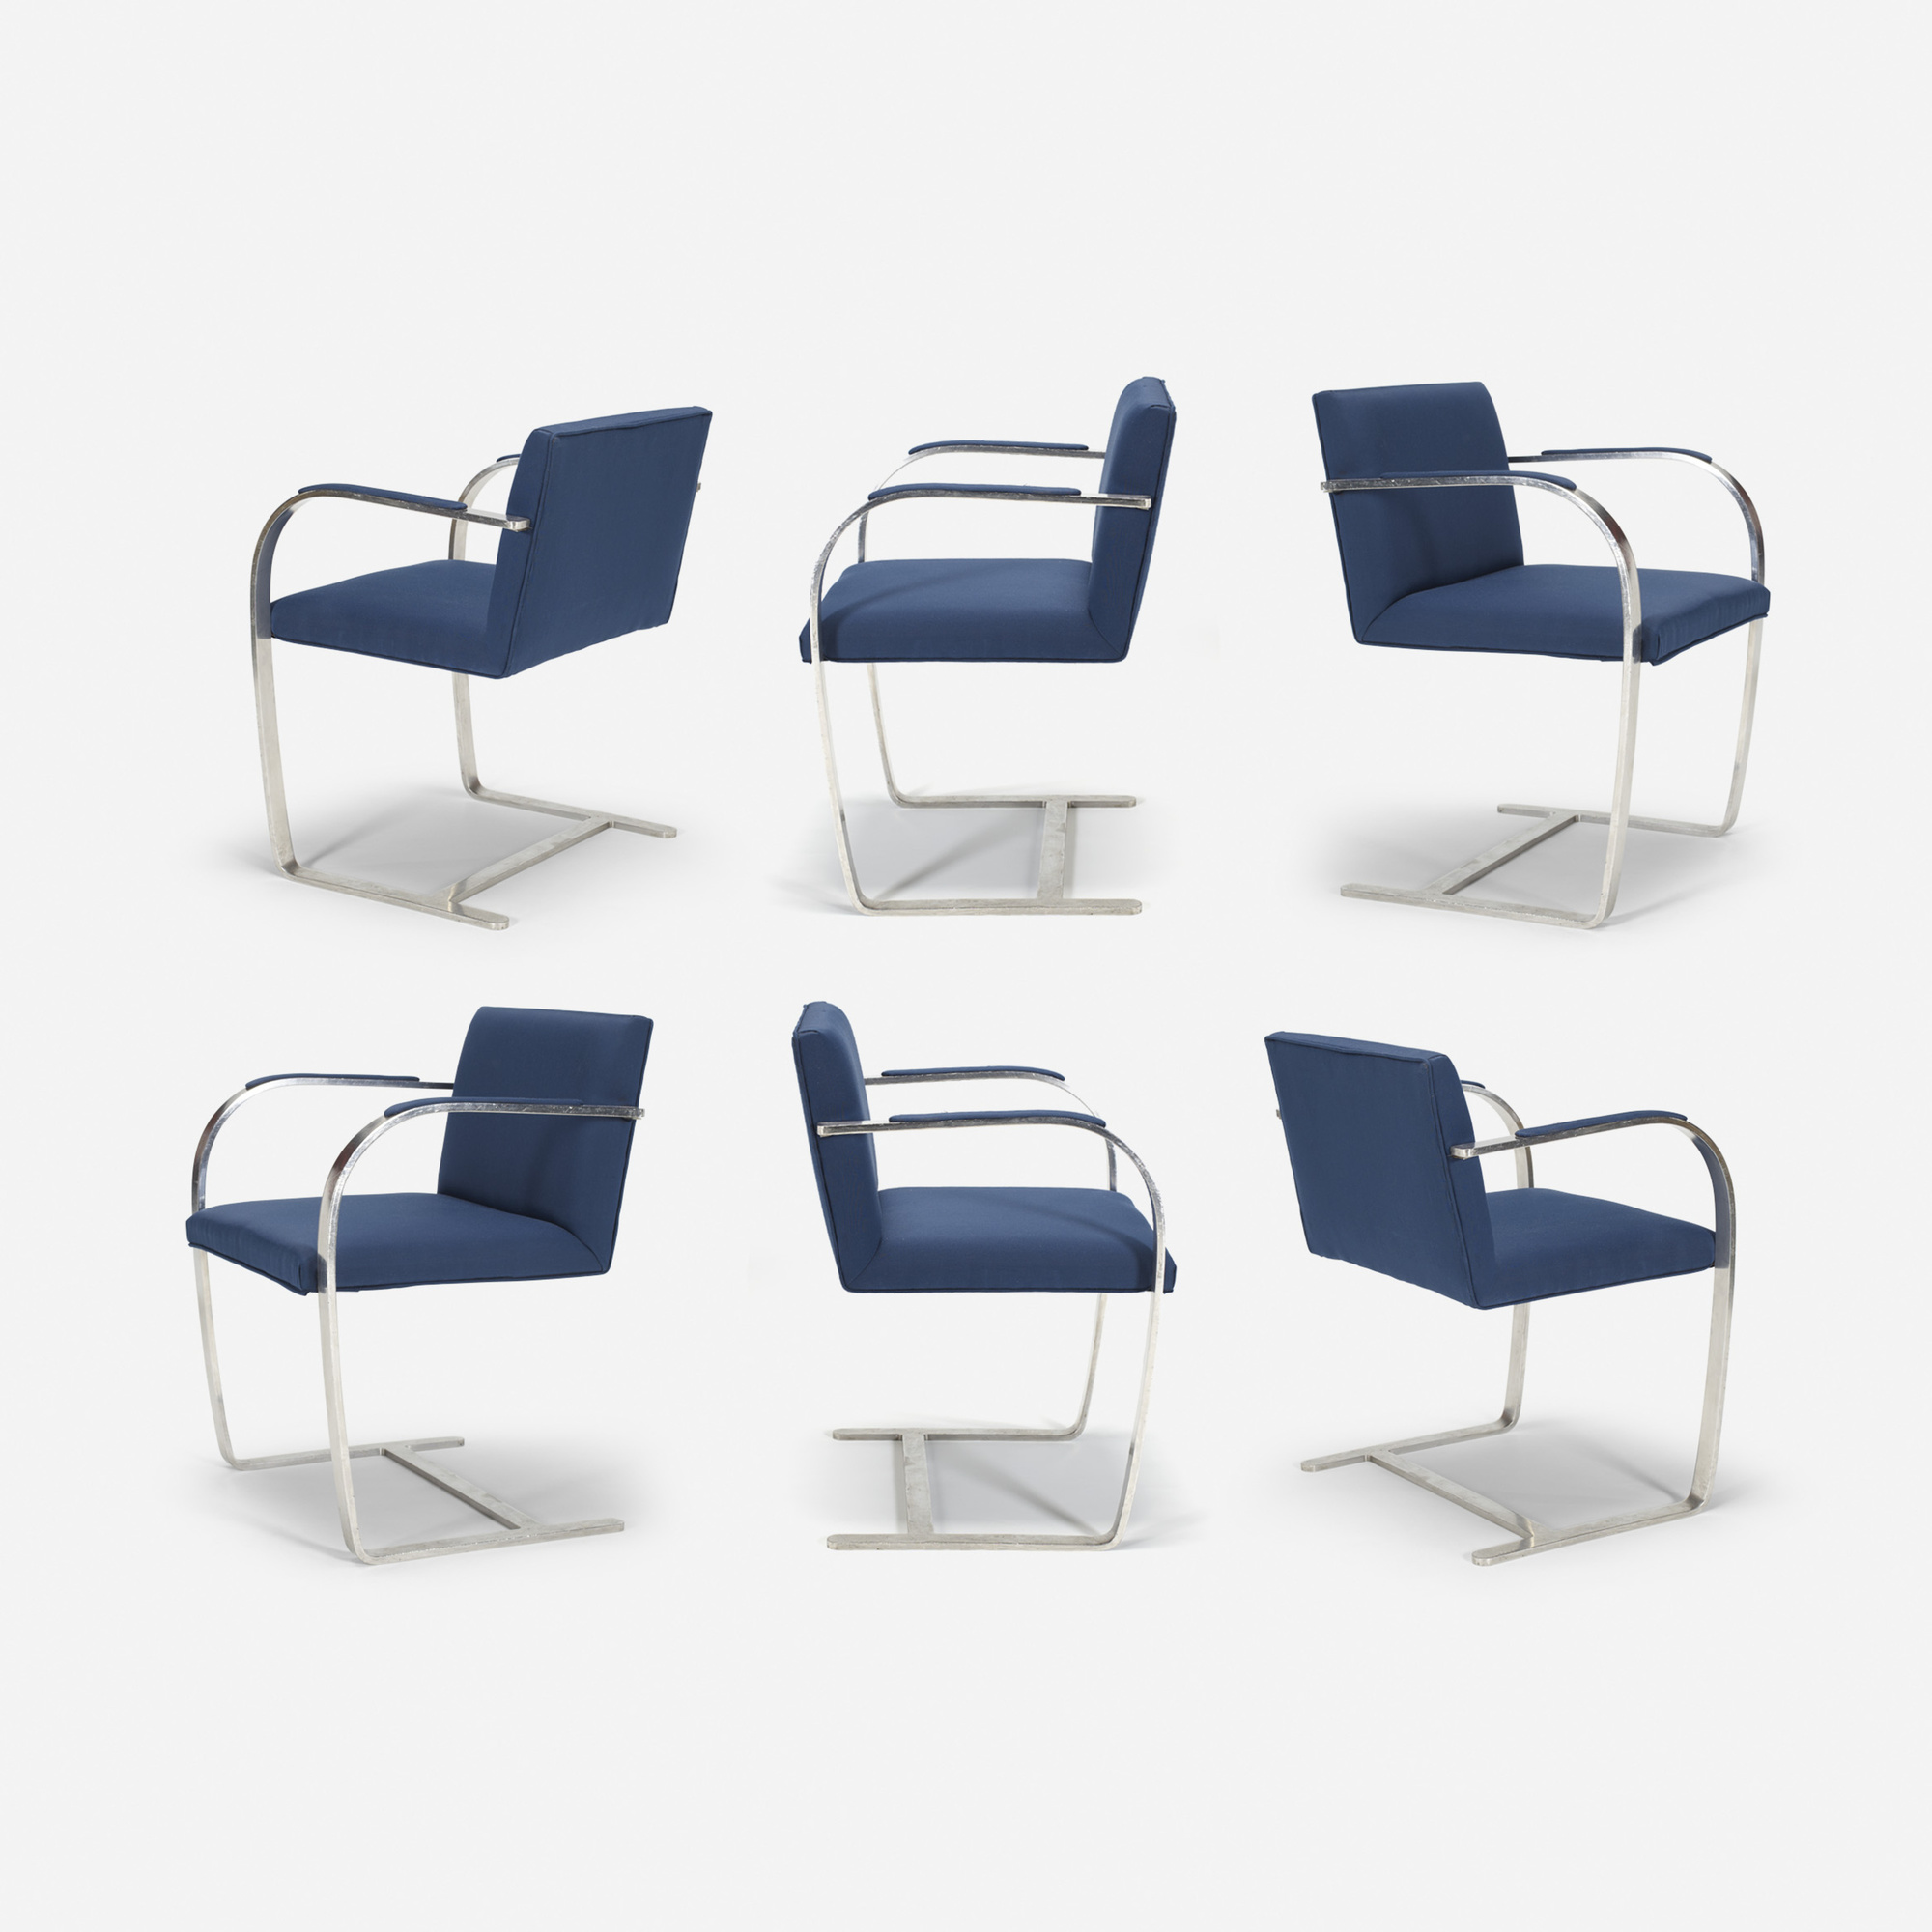 703: Ludwig Mies van der Rohe / Brno chairs from The Four Seasons, set of six (1 of 1)